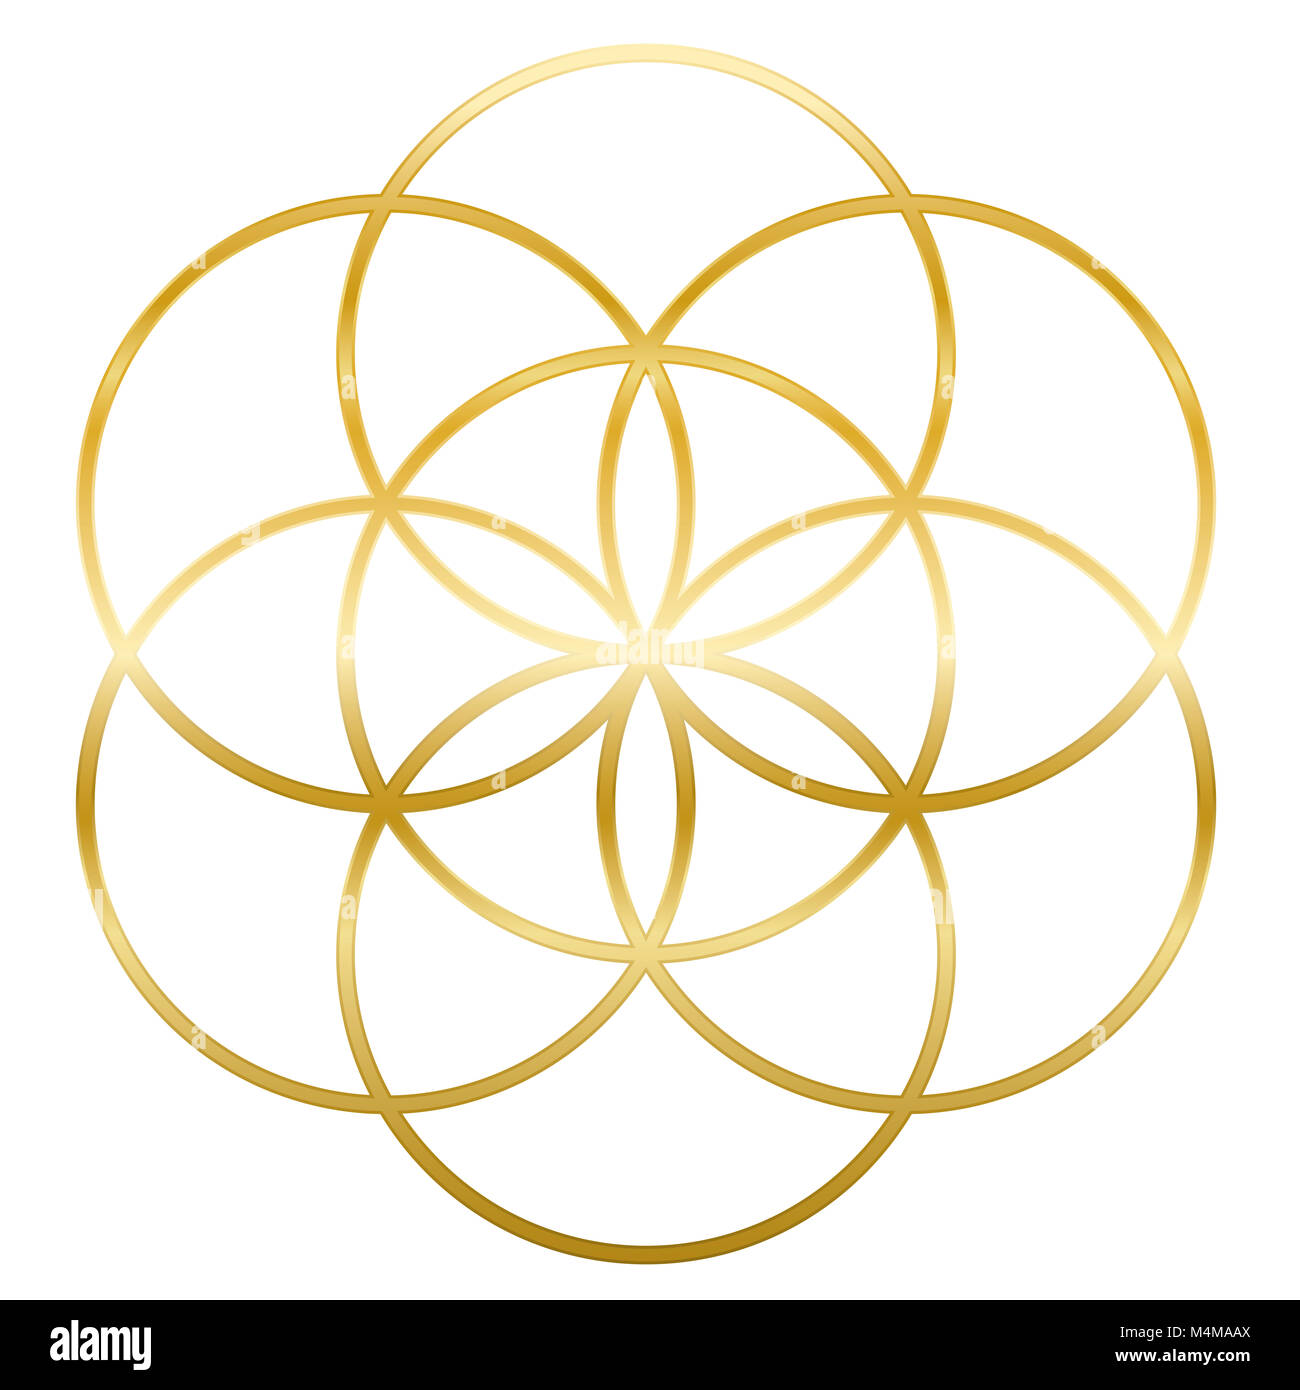 Golden Seed of Life. Precursor of Flower of Life symbol. Unique geometrical figure, composed of seven overlapping - Stock Image